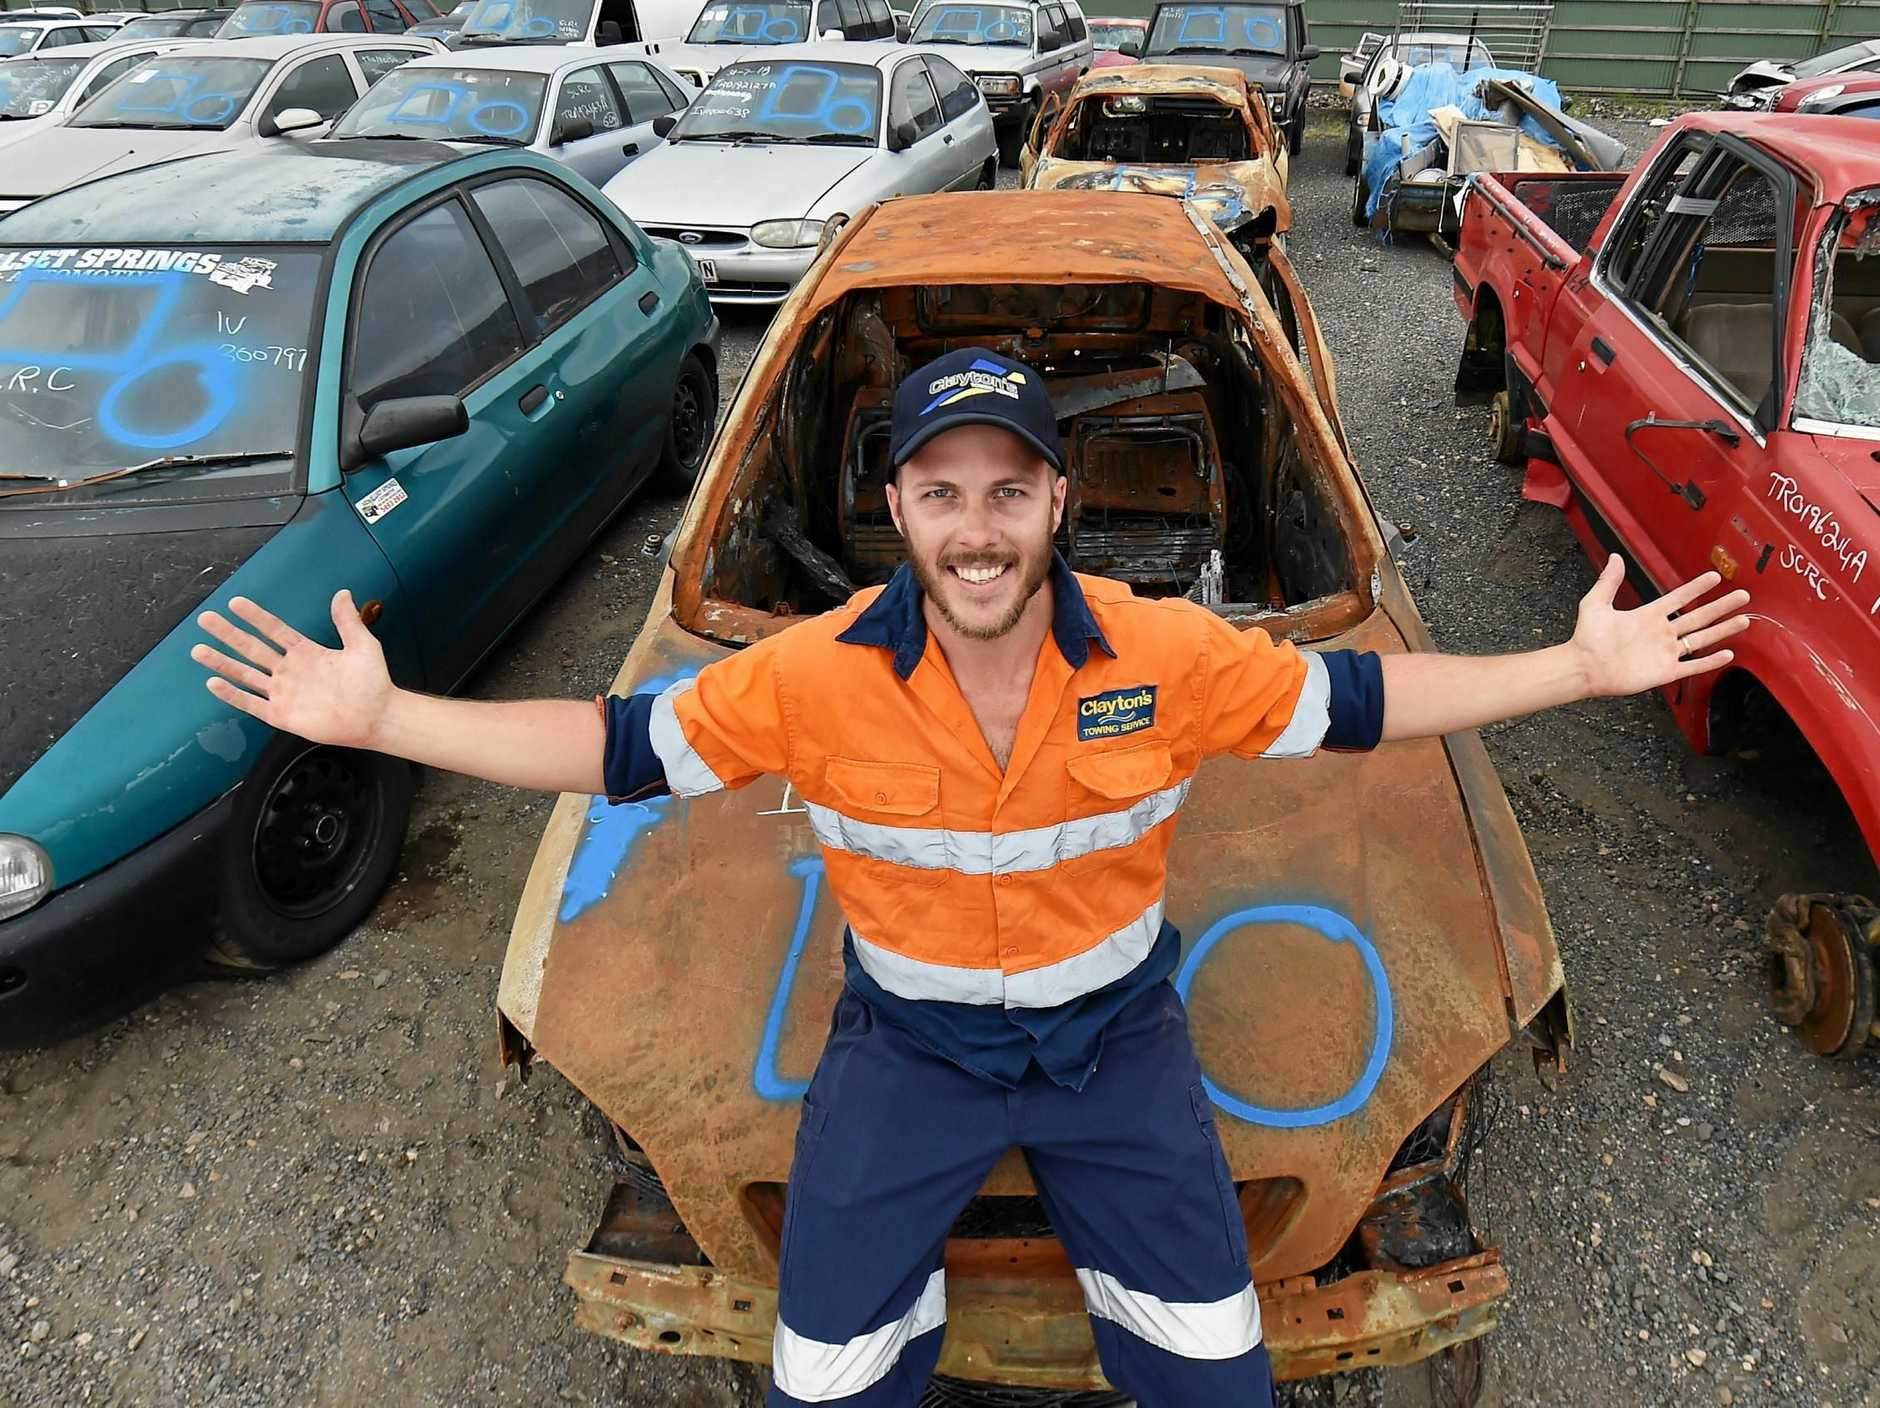 BARGAIN BUYS: Clayton's Towing are having its auction again, with 300 plus cars on offer.